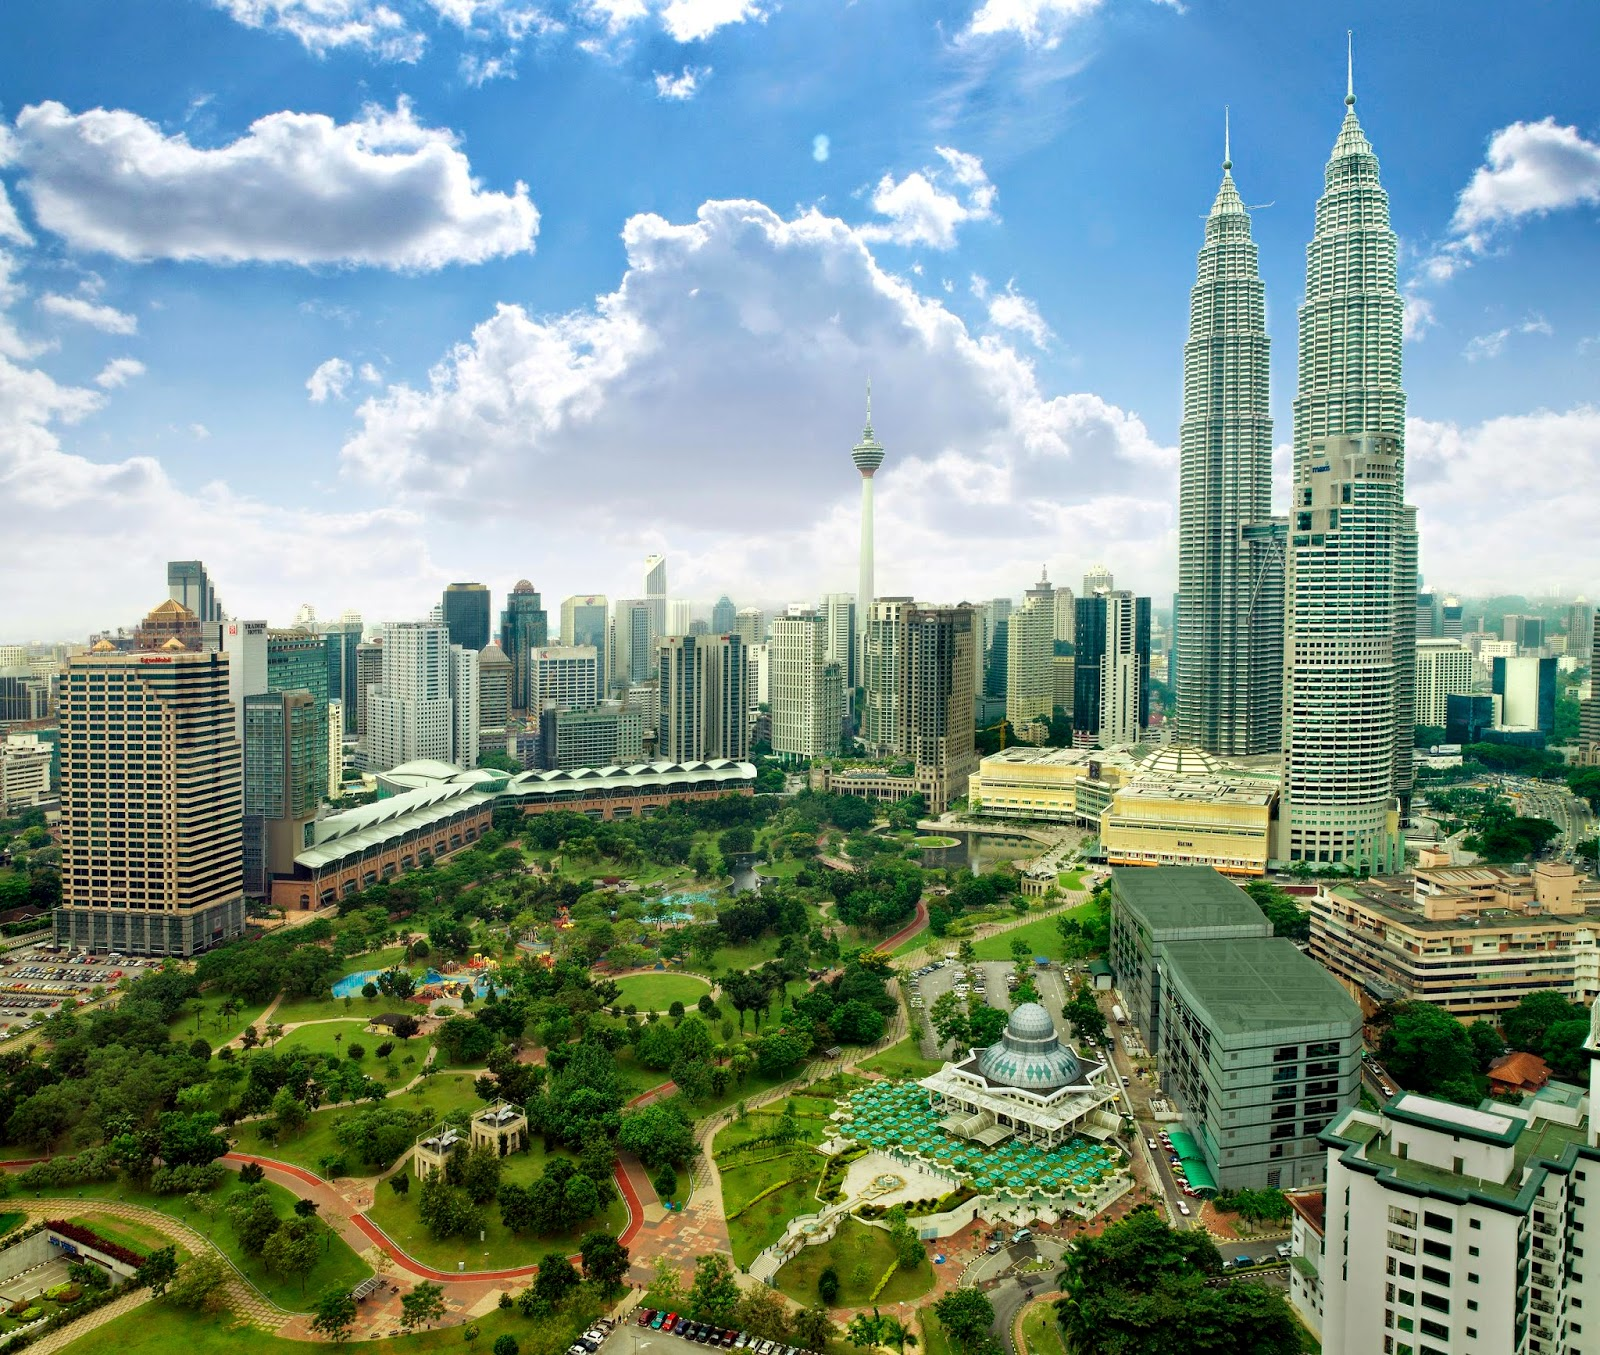 KL is one of the New Seven Wonders cities!